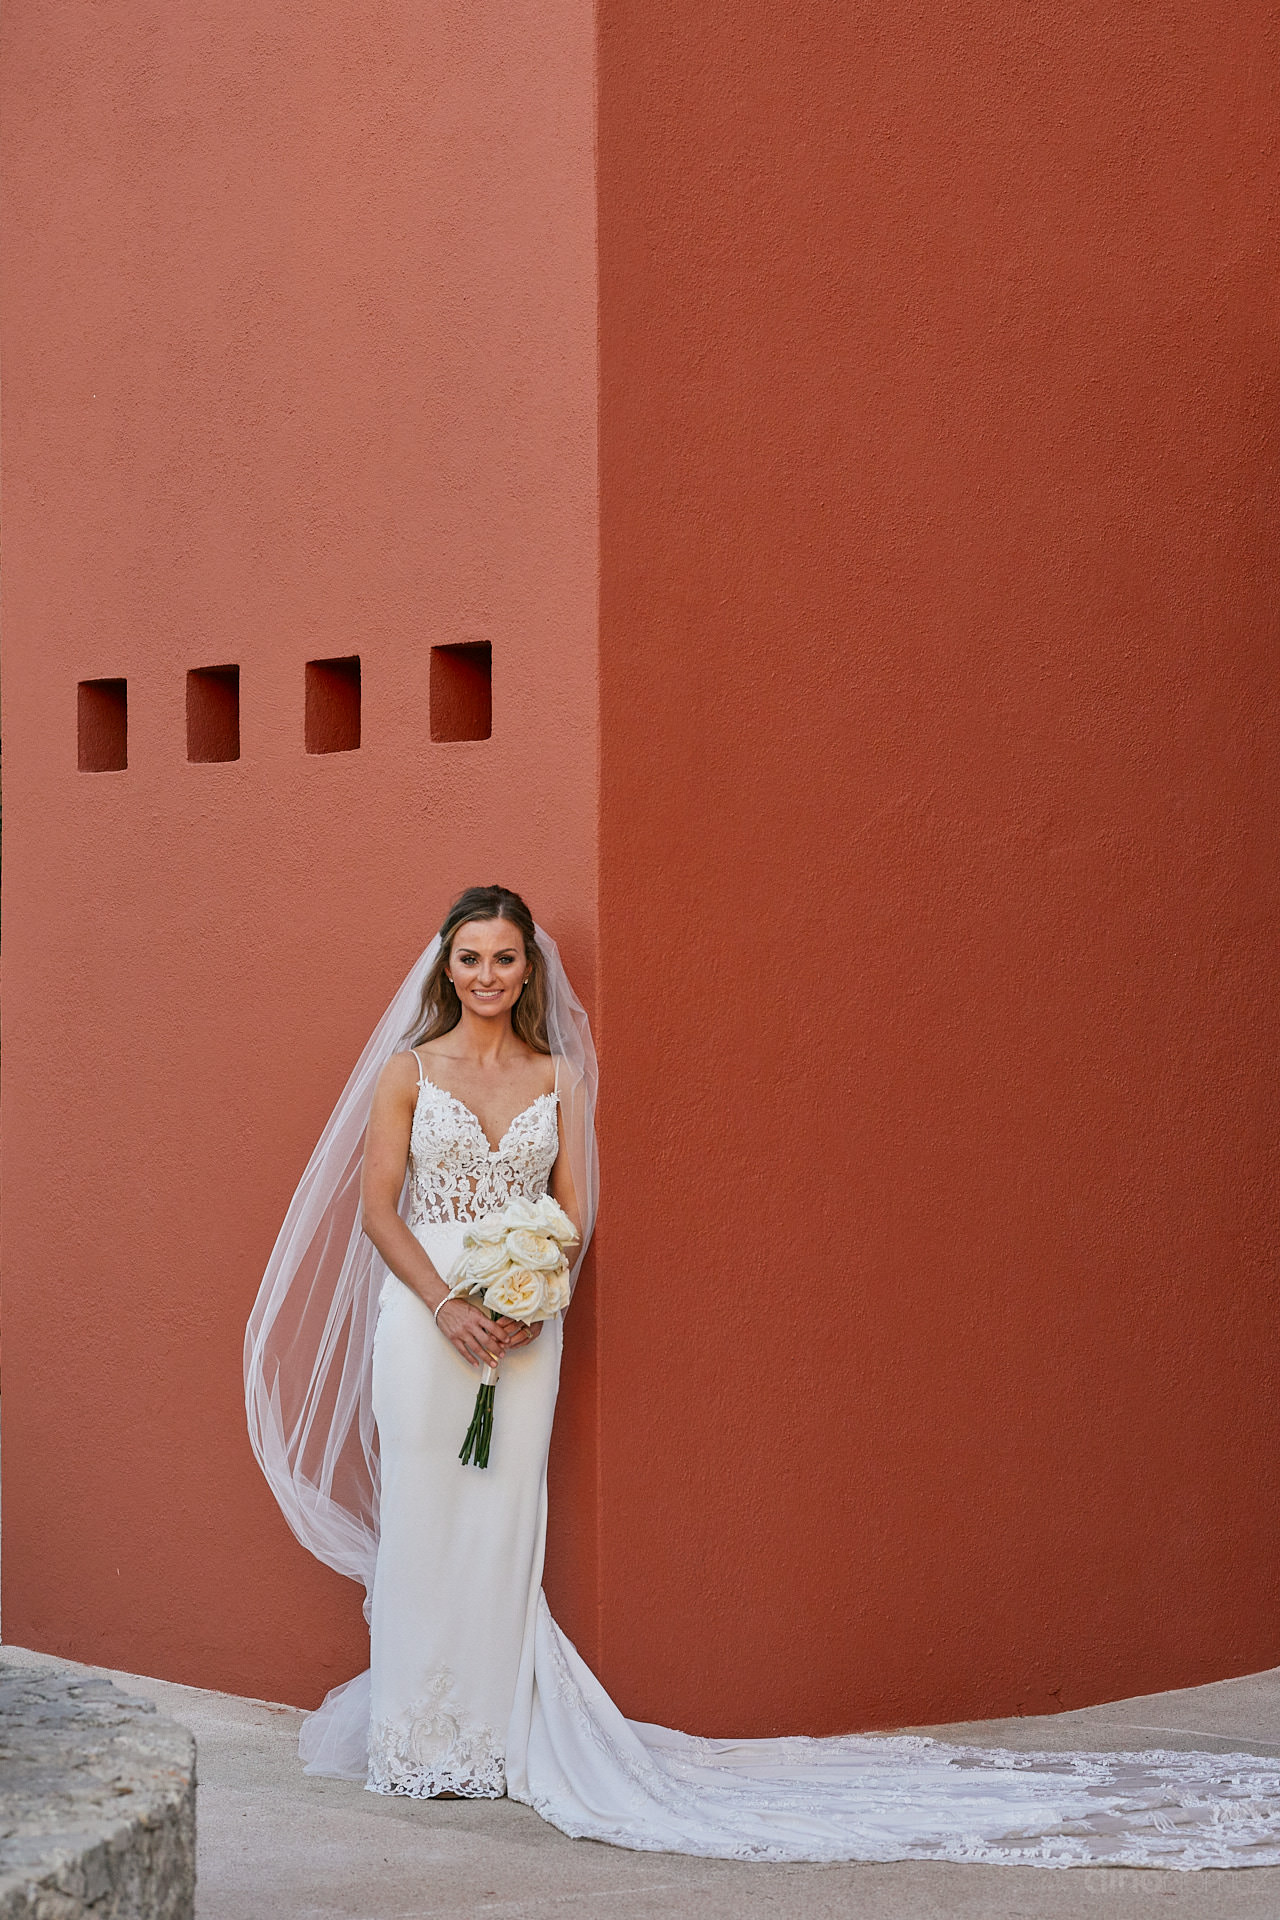 Professional Photographer Available For Weddings, Engagement Sessions, Fashion And Architecture Projects.